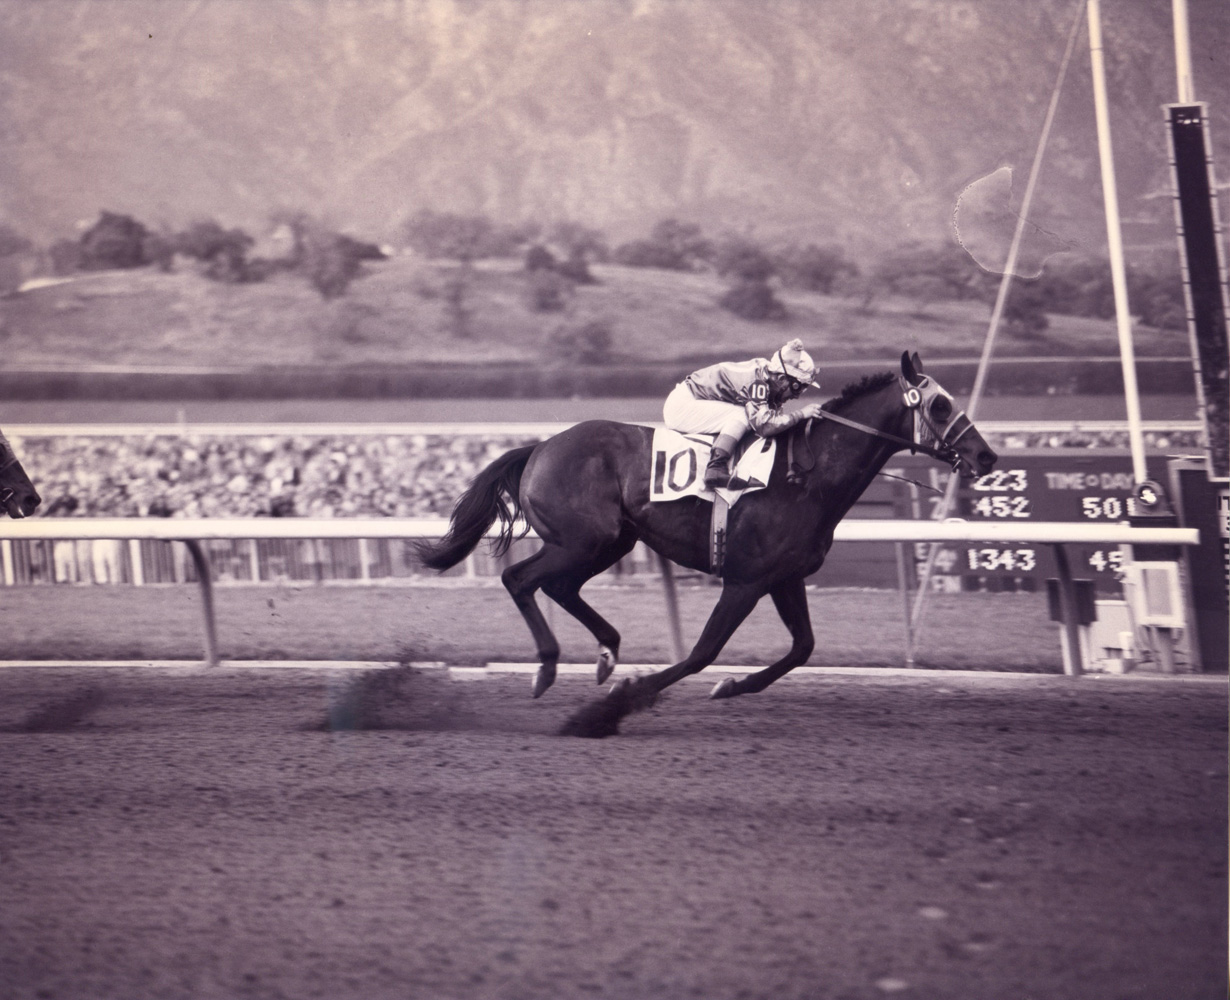 Round Table (Bill Shoemaker up) winning the 1958 Santa Anita Handicap at Santa Anita Park (Santa Anita Photo/Museum Collection)